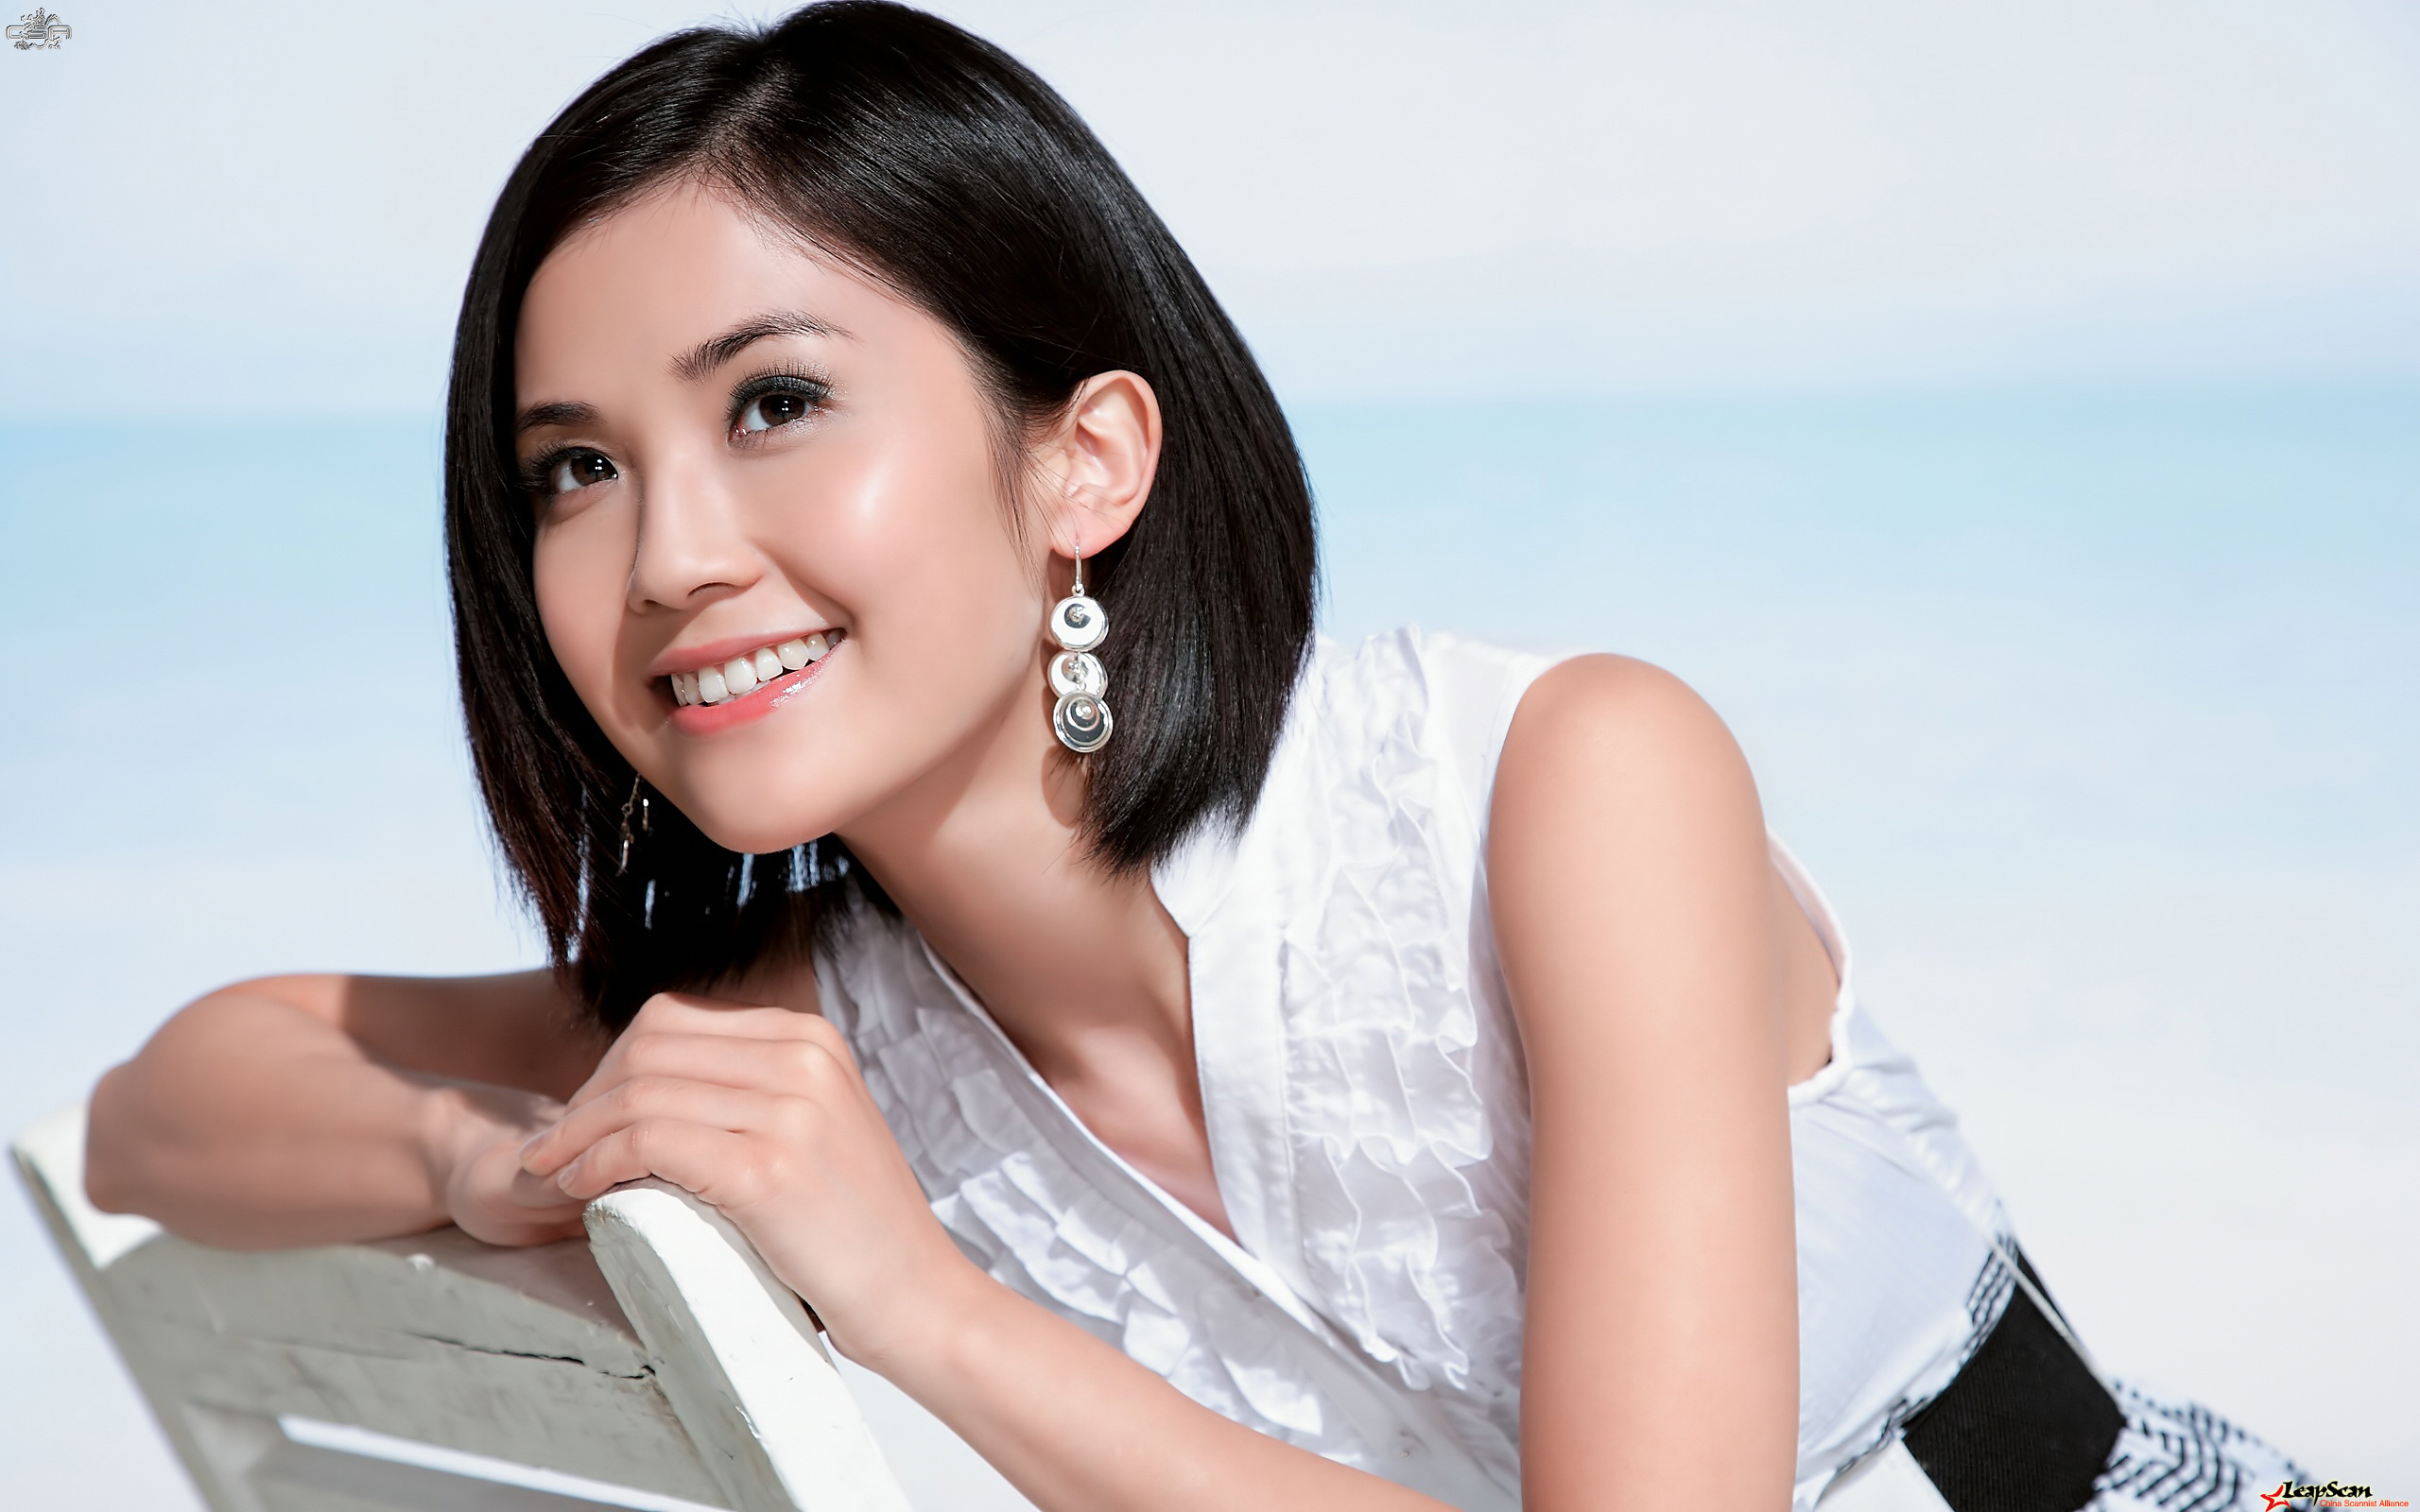 charlene choi wallpapers images photos pictures backgrounds